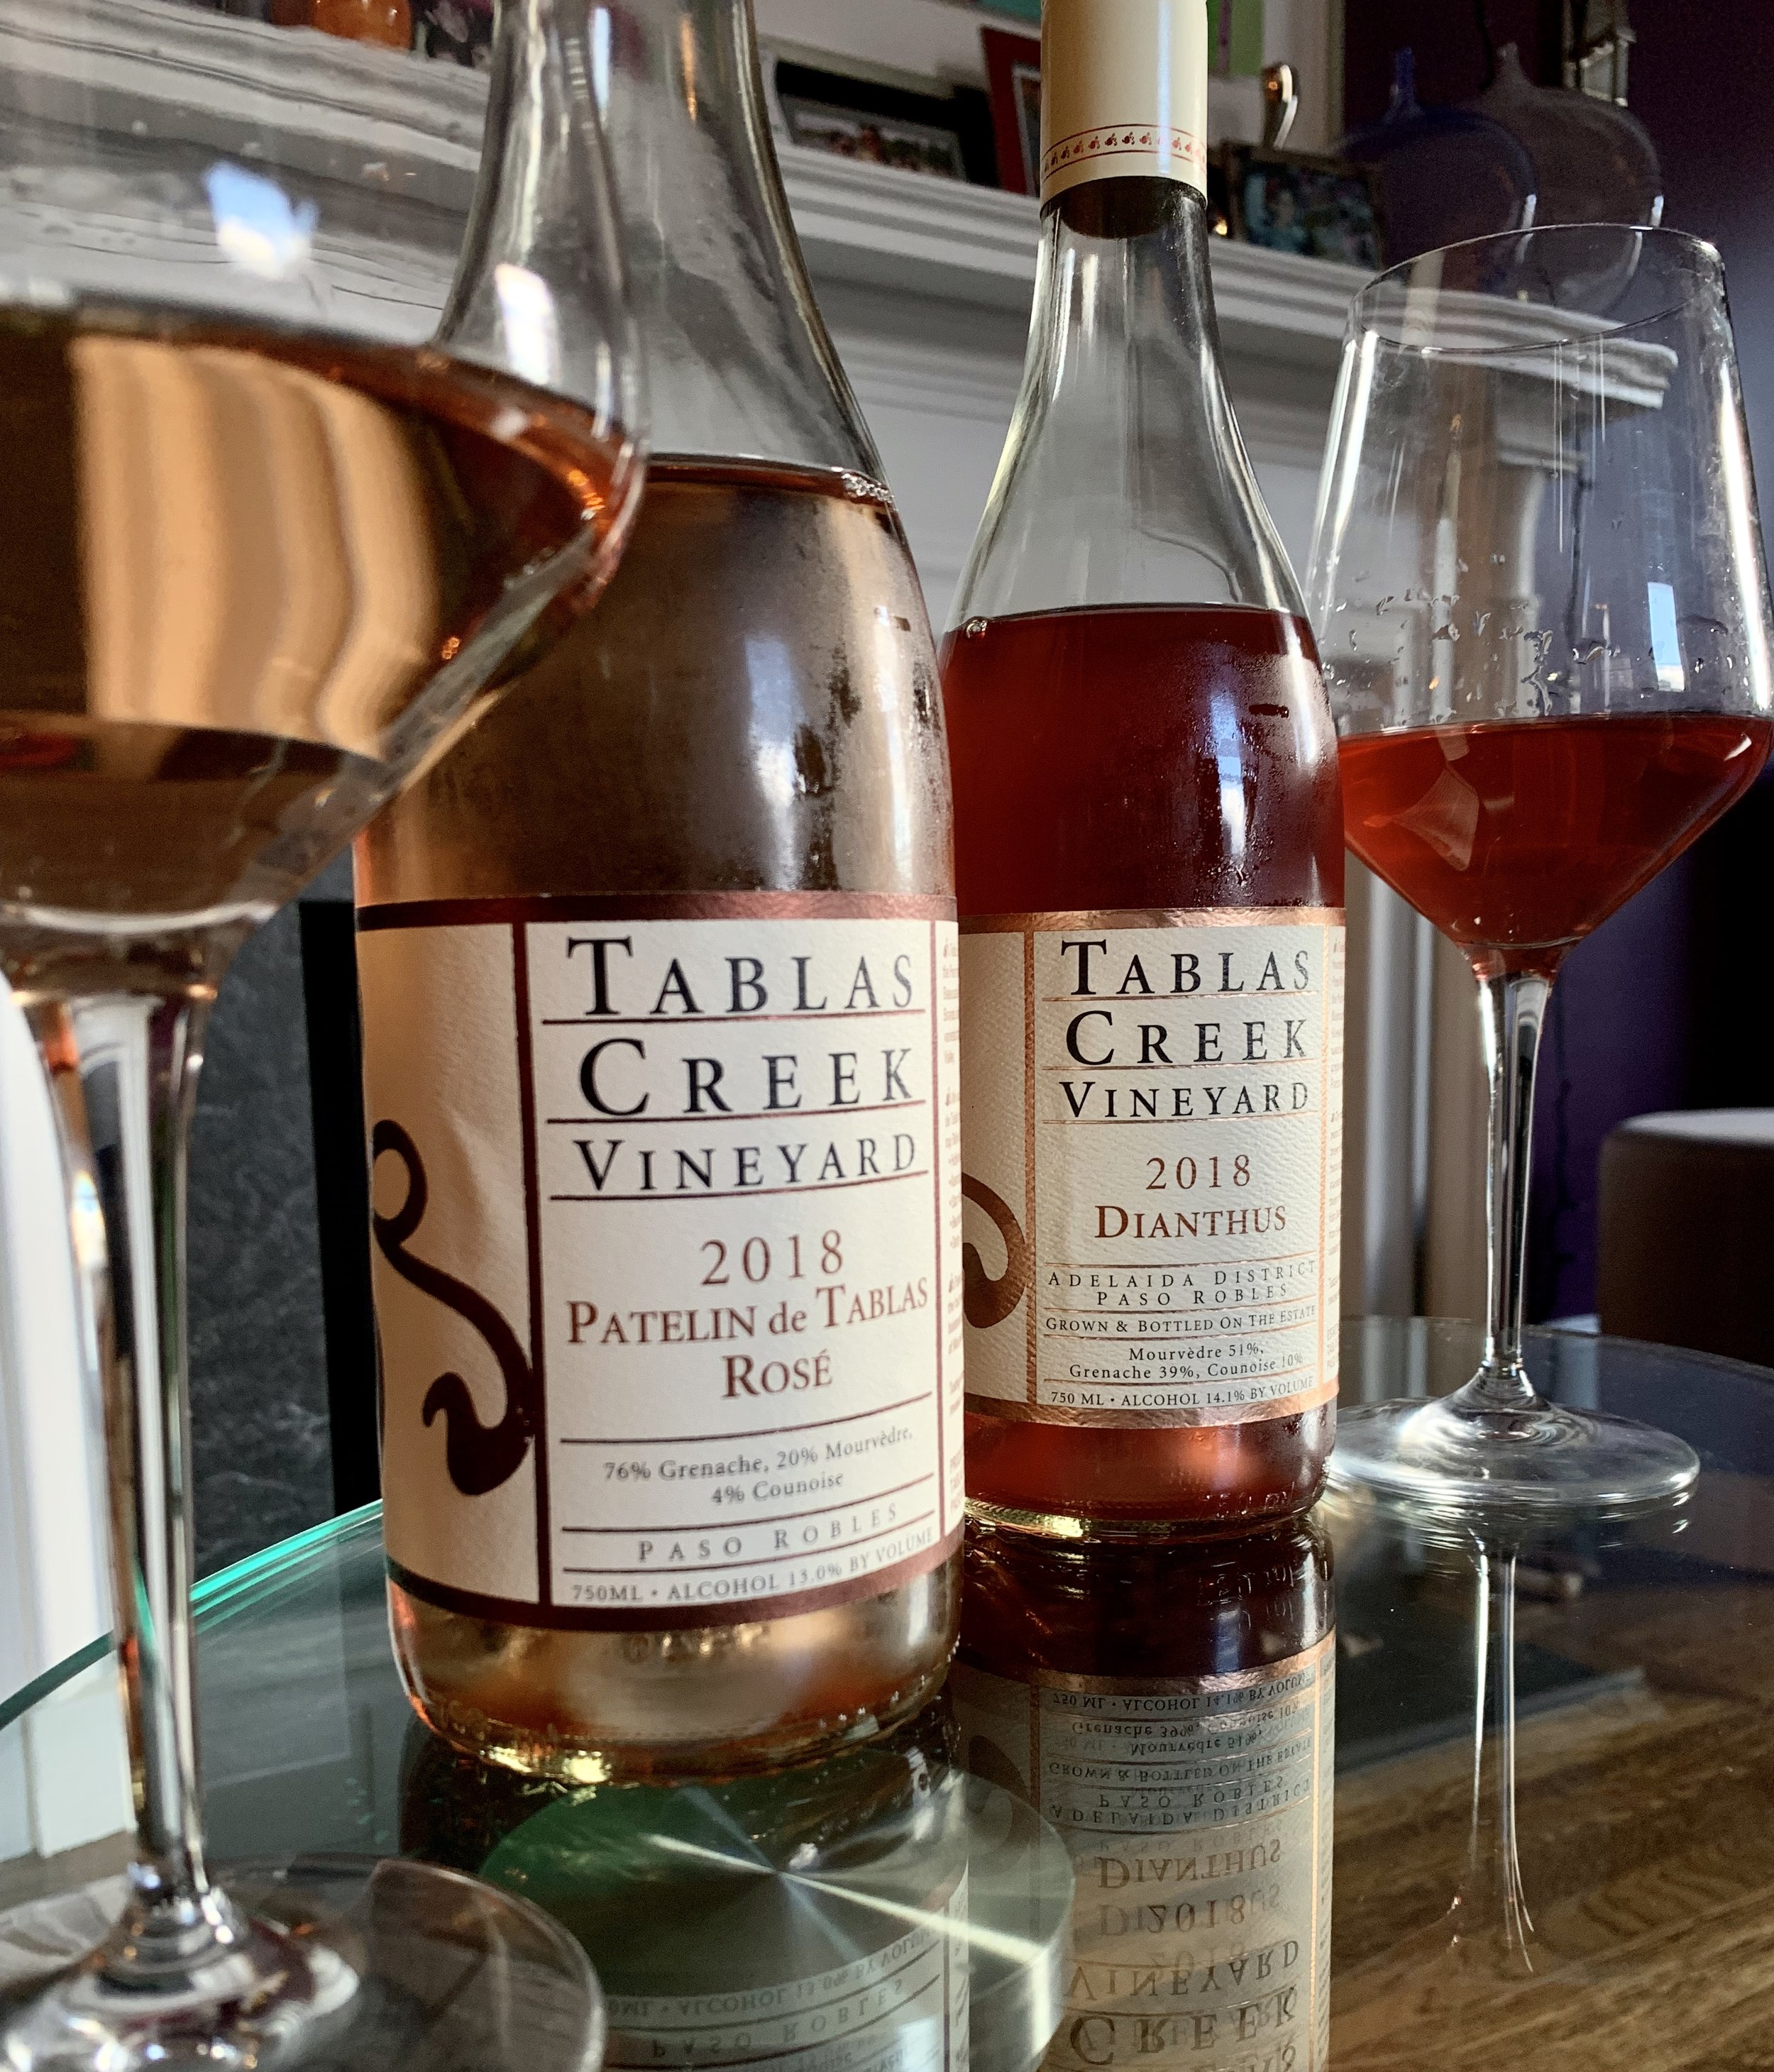 If you prefer a full-bodied dry rosé,Tablas Creek makes Dianthus (above, right), a riper style of rosé than the Patelin de Tablas.